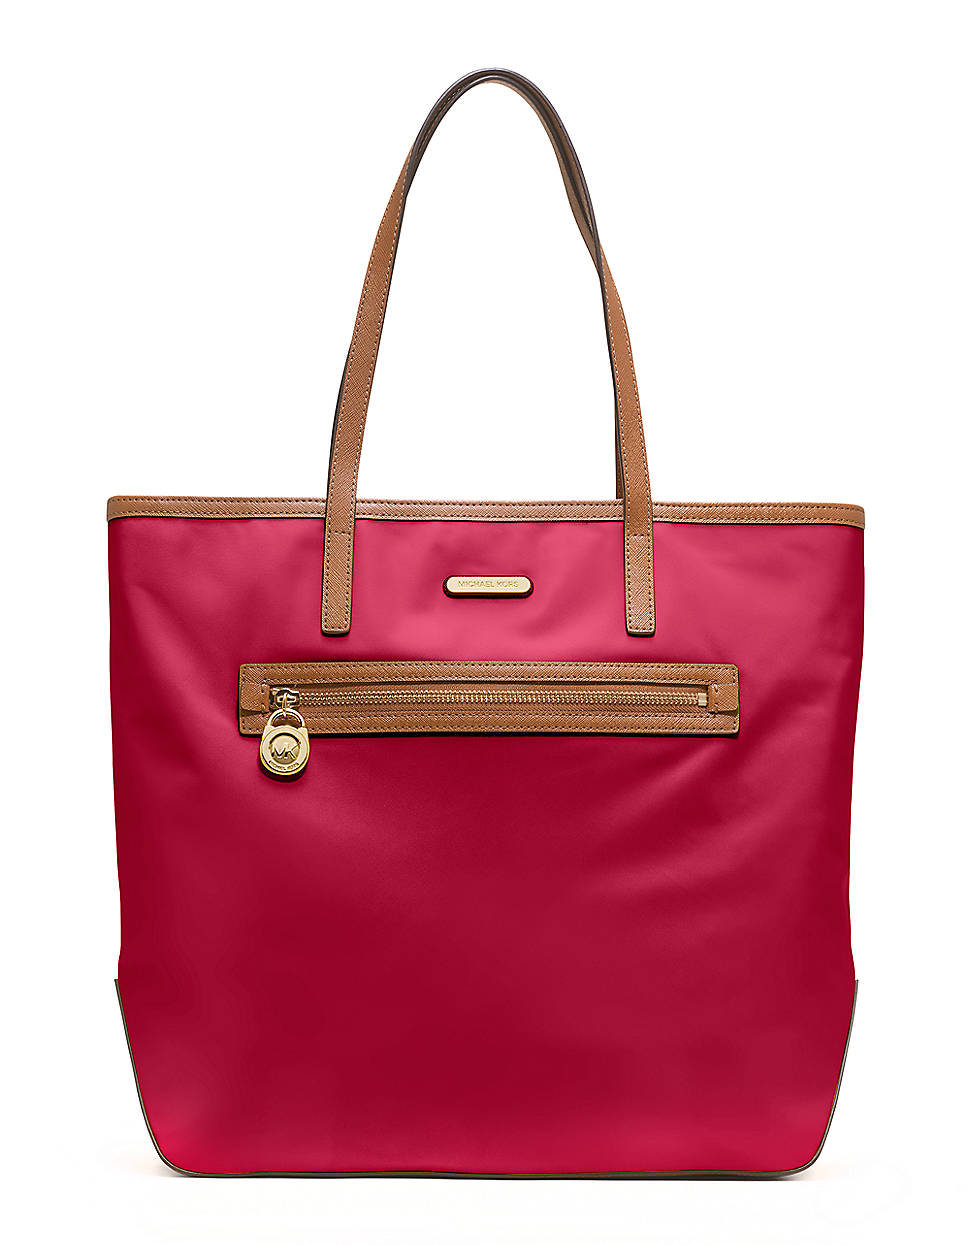 1af0f547f991 Michael Kors Nylon Tote Bags | Stanford Center for Opportunity ...